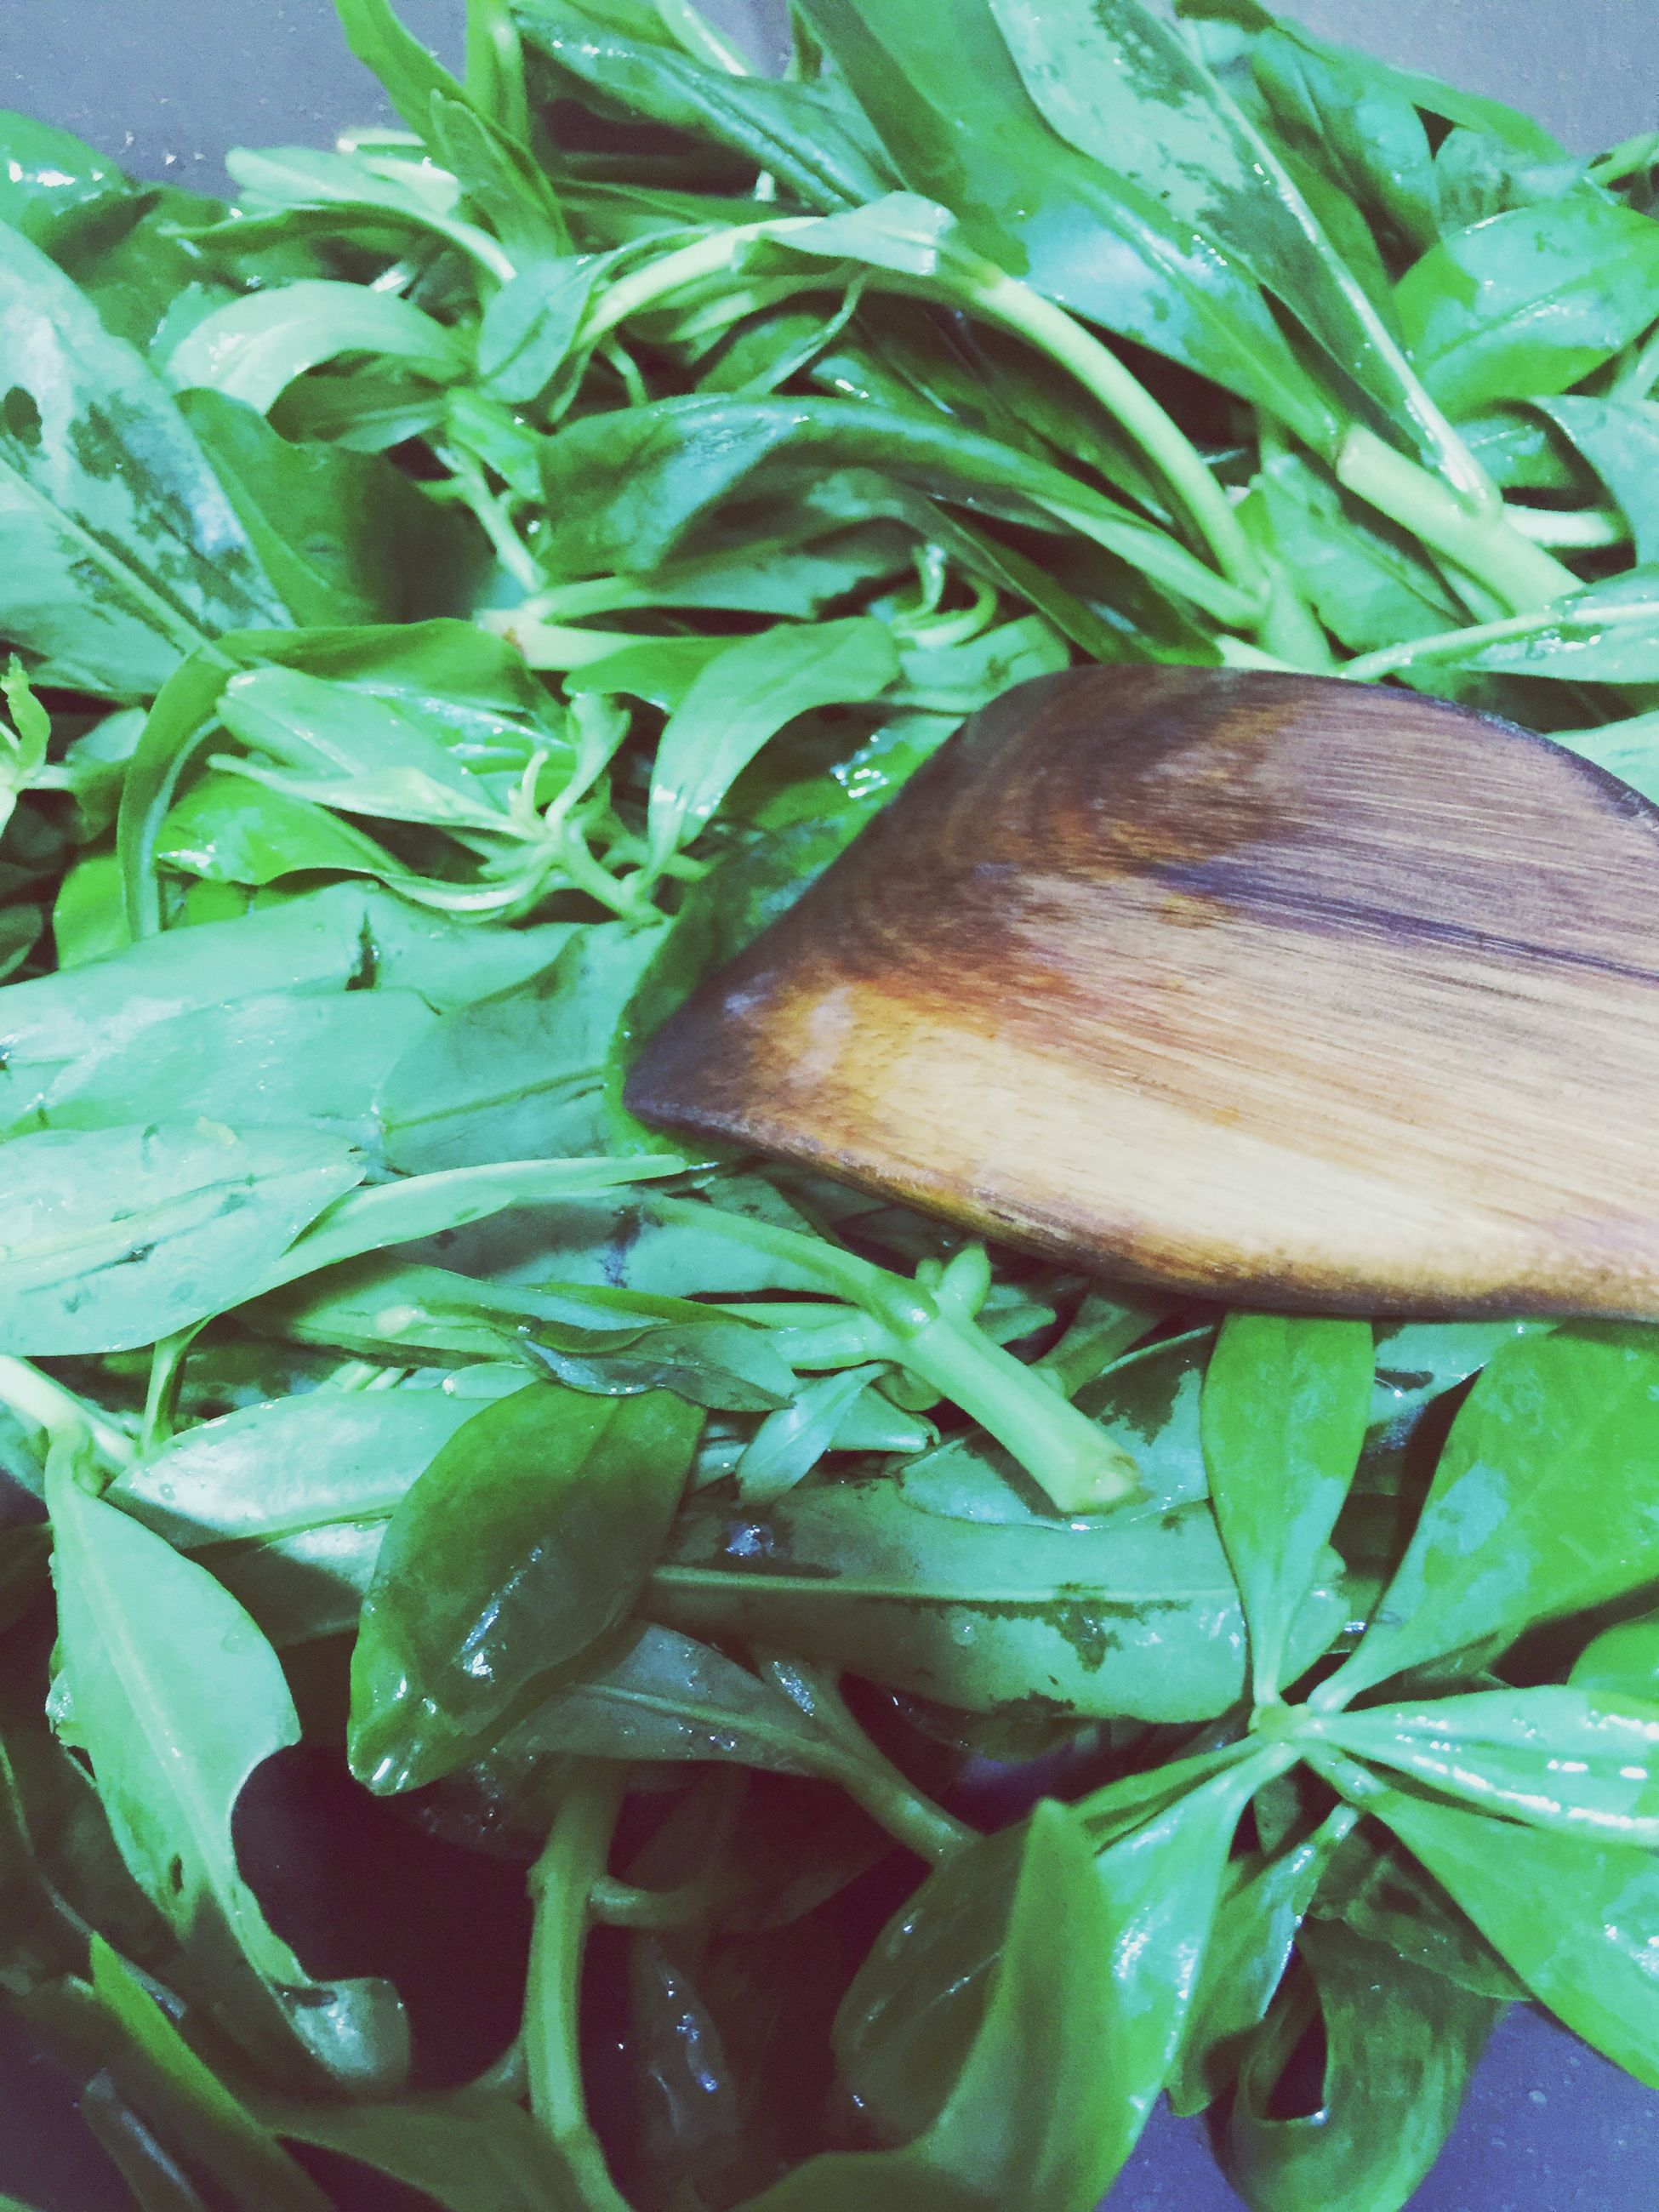 leaf, green color, food and drink, close-up, freshness, food, healthy eating, plant, growth, high angle view, vegetable, no people, nature, leaves, still life, indoors, day, leaf vein, green